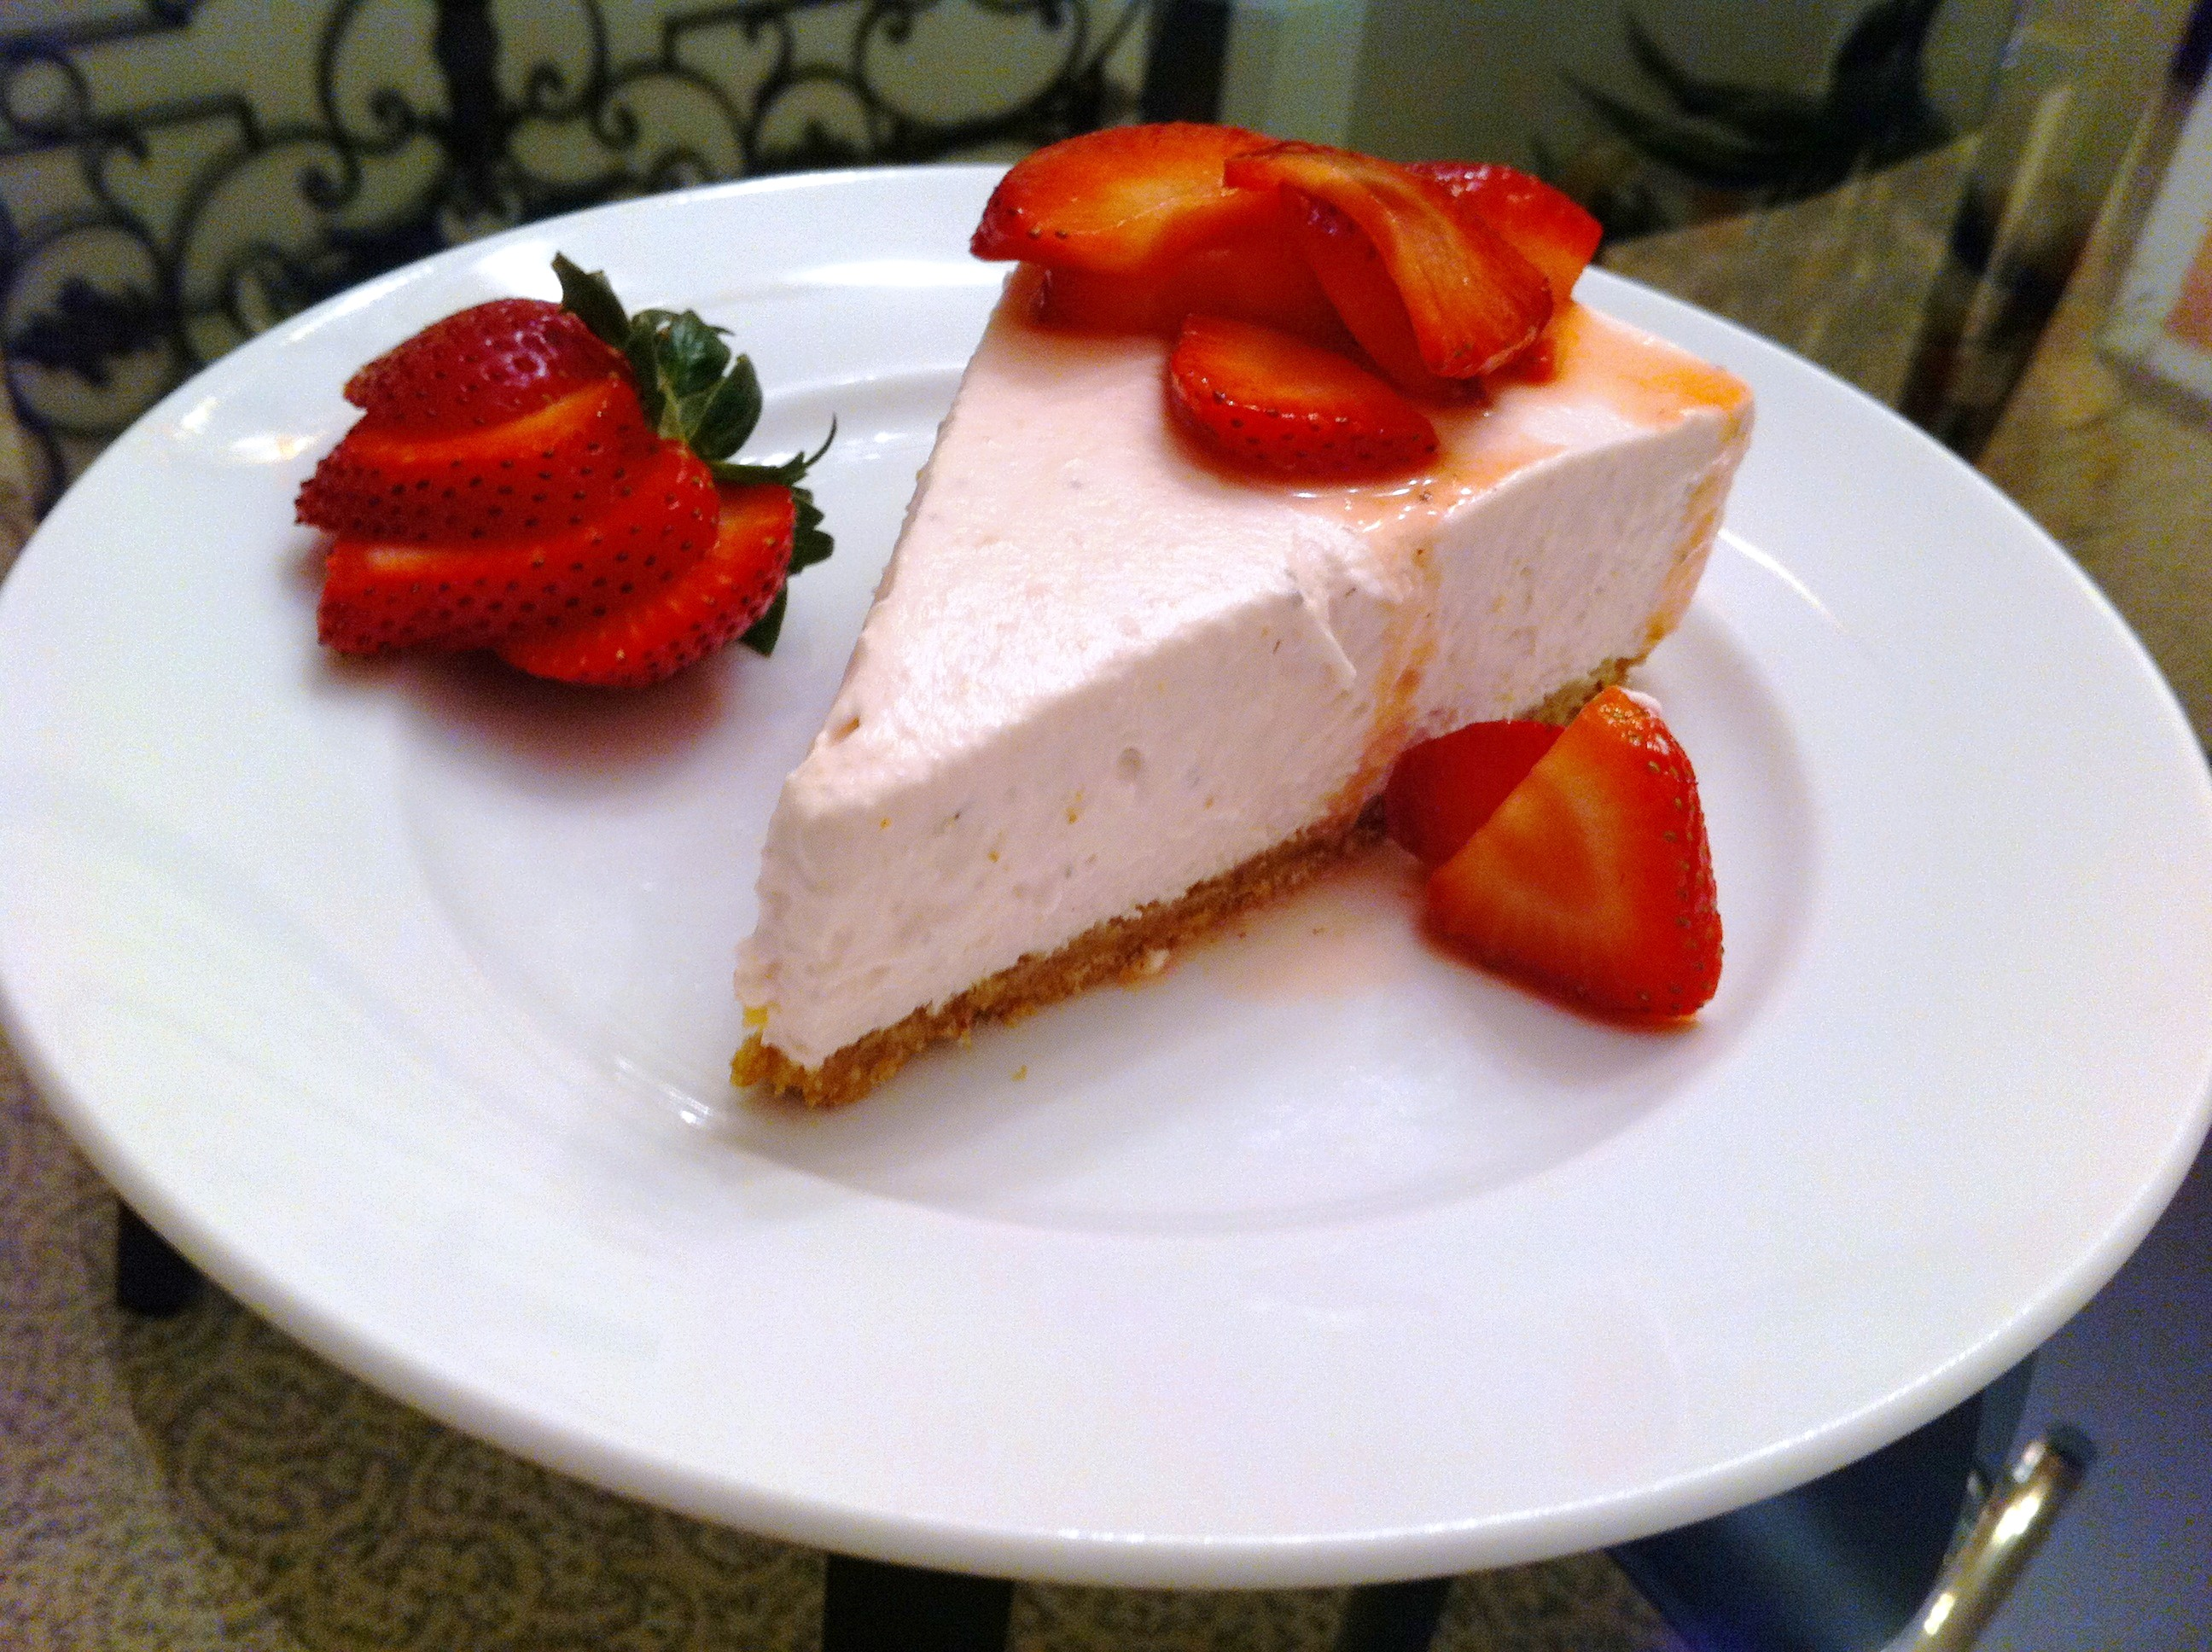 Baked Strawberry Cheesecake Recipe No bake strawberry cheesecake ...